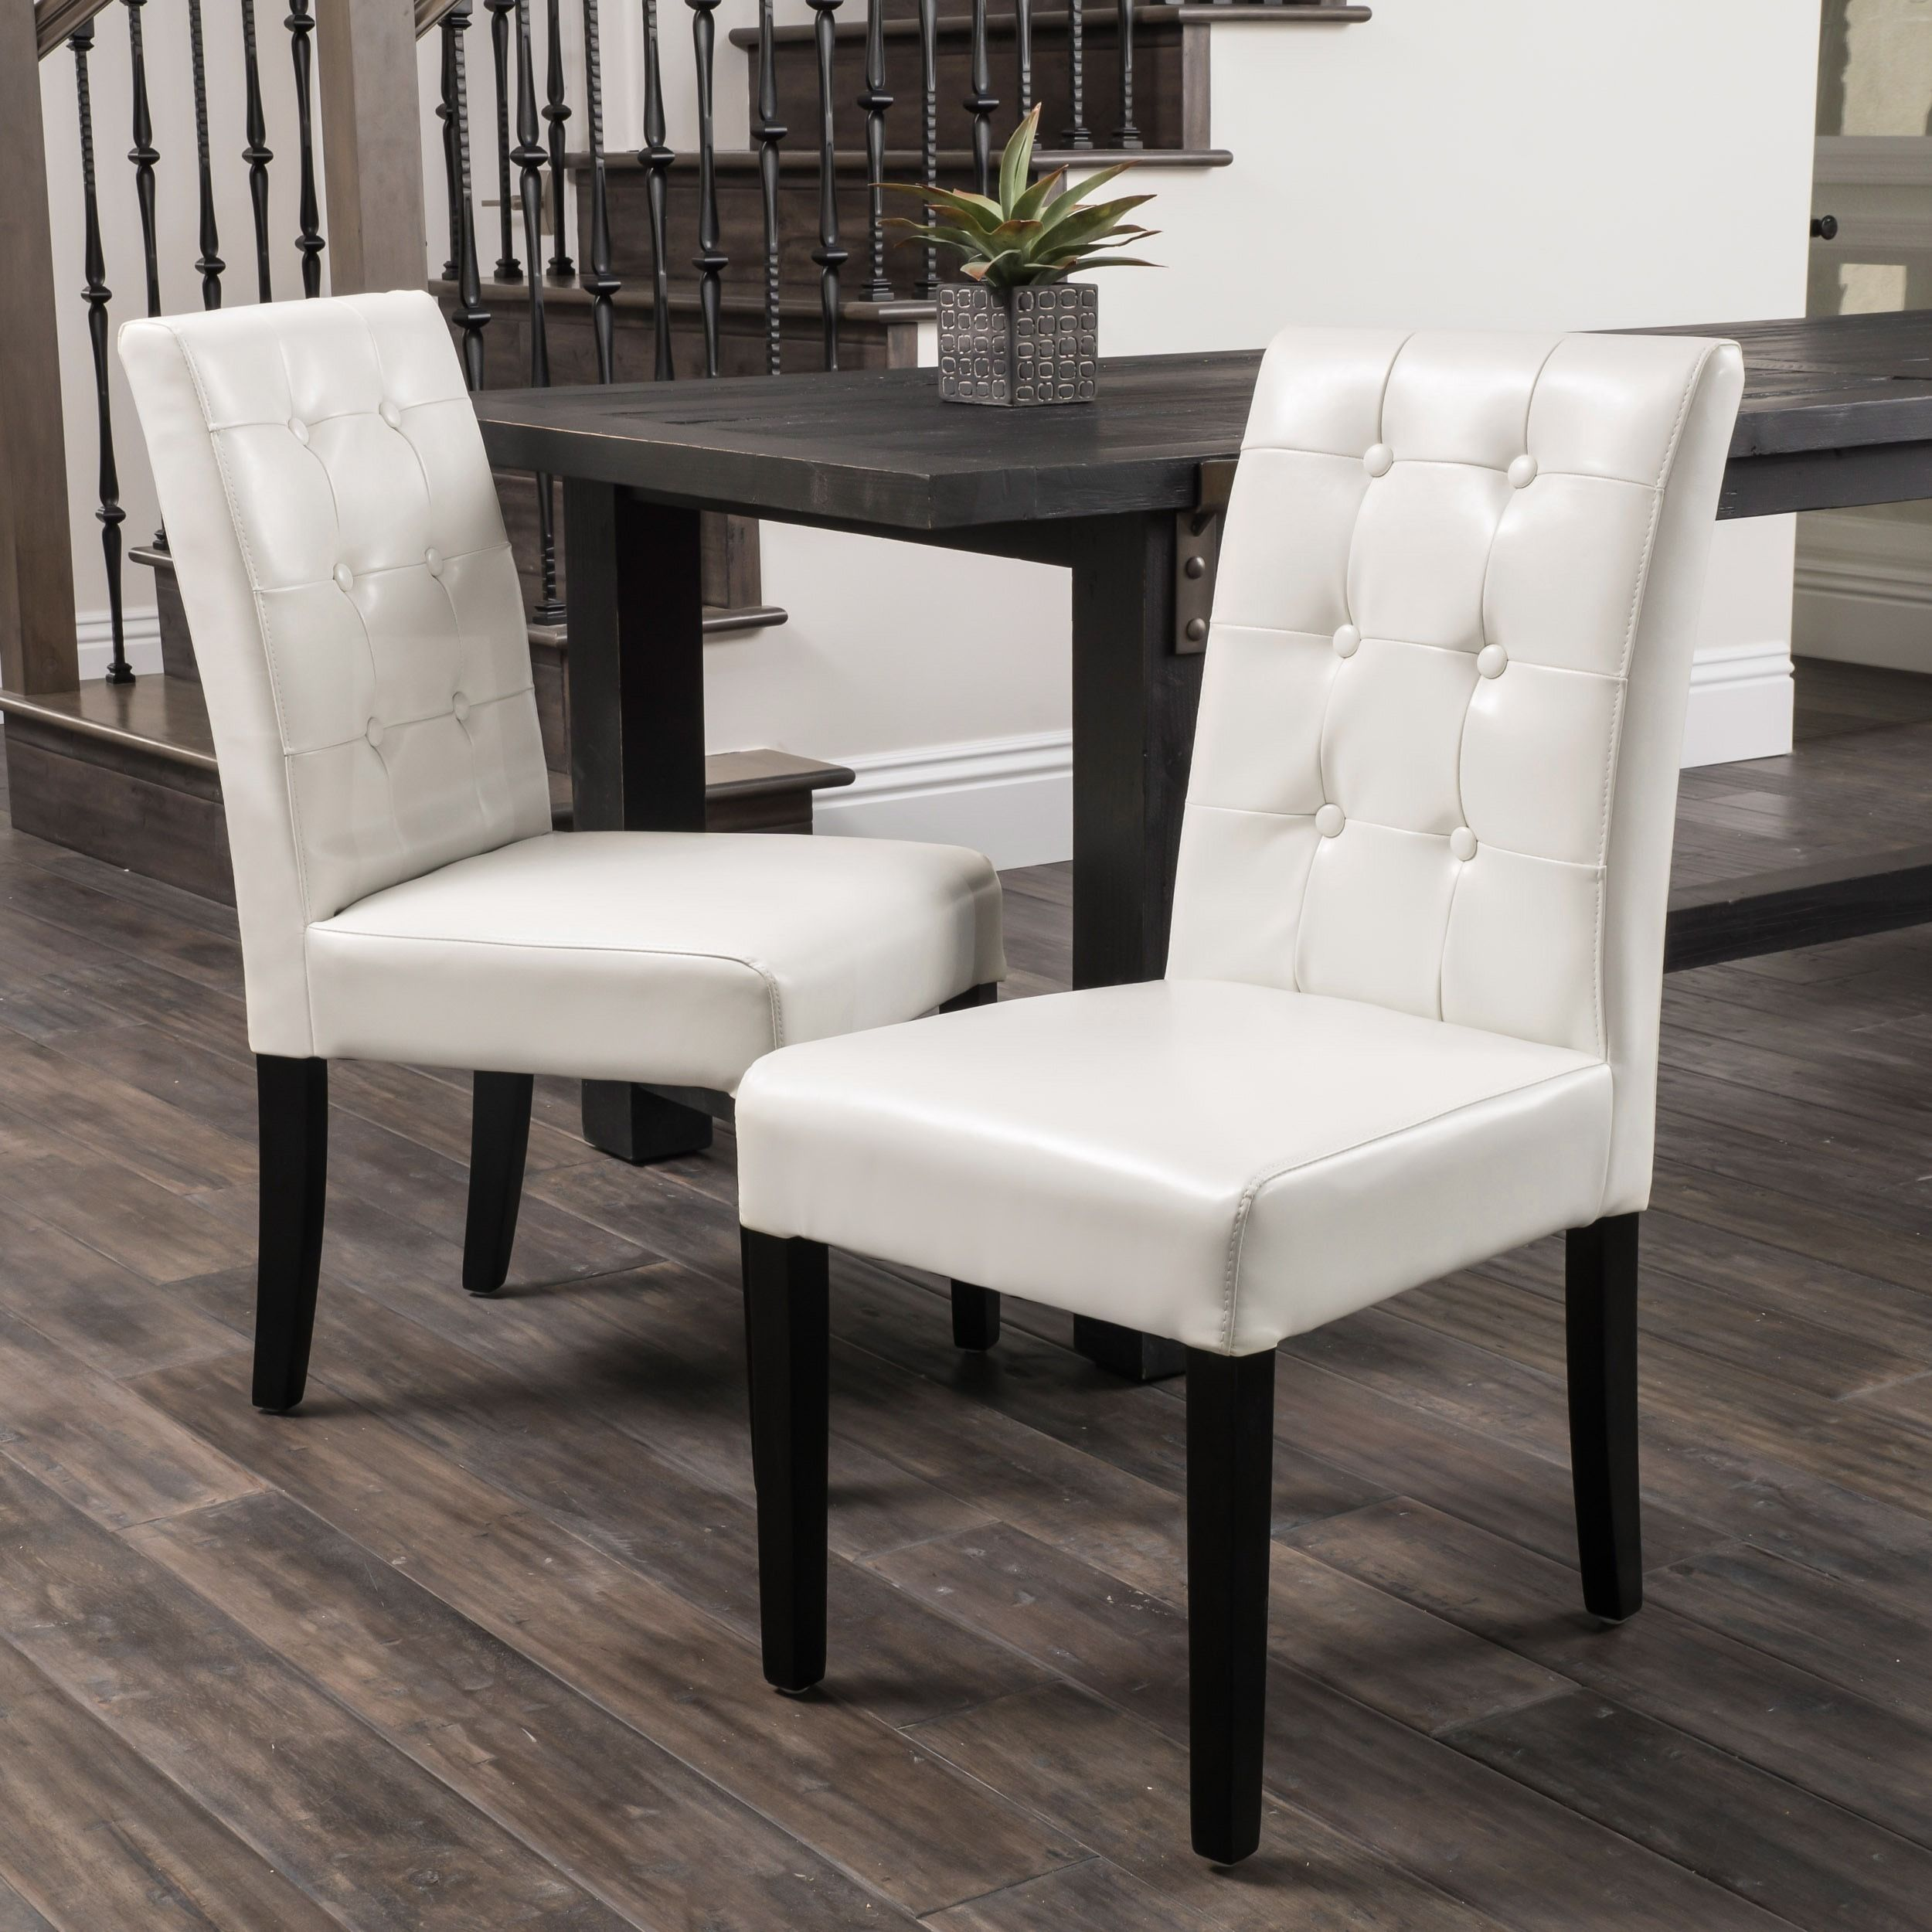 Krista Ivory Cream Leather Dining Chairs Leather Dining Chairs